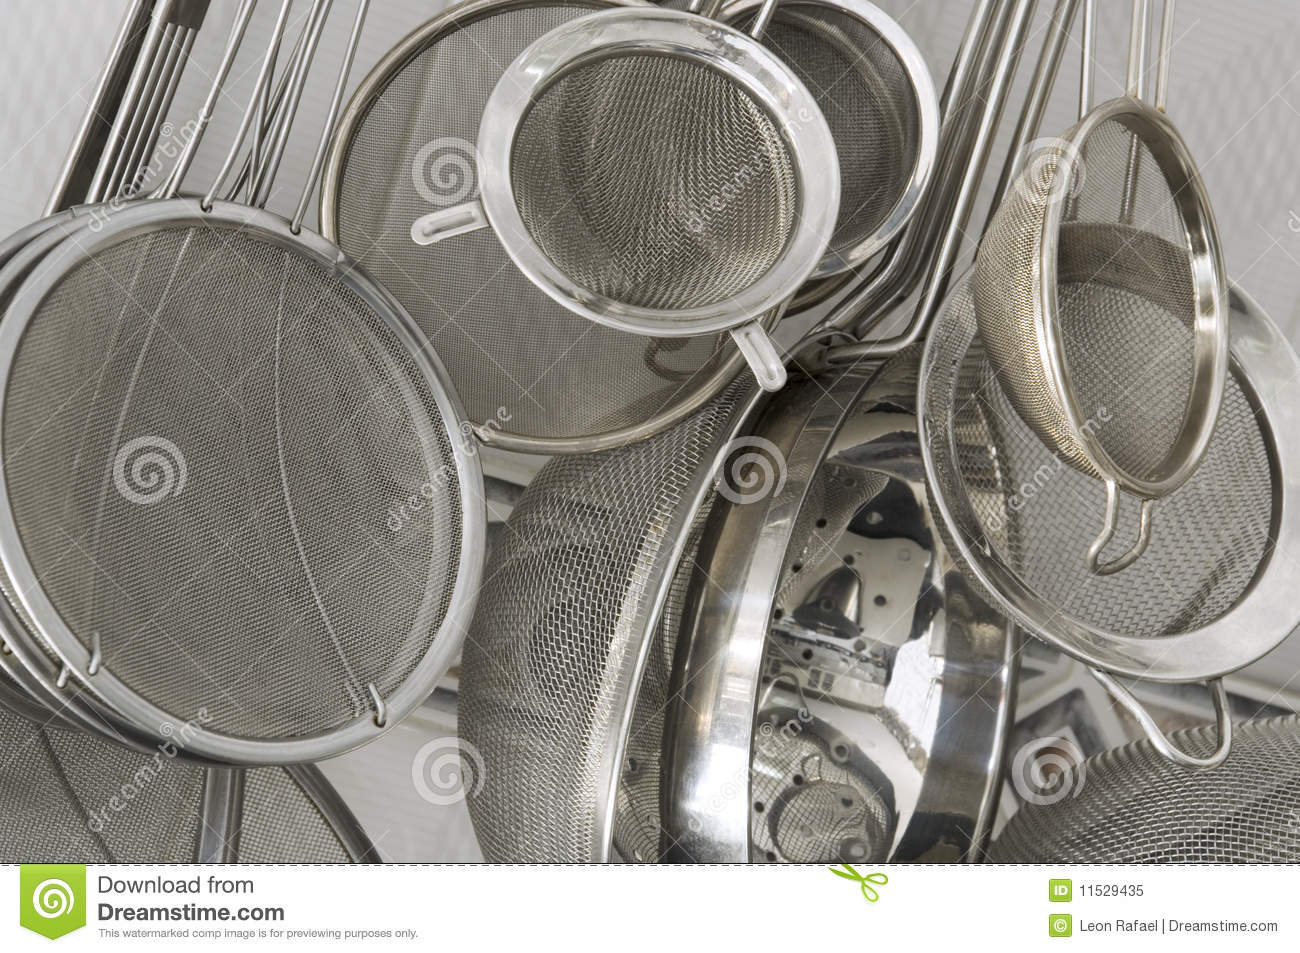 Kitchen Strainers Close Up Royalty Free Stock Photo - Image: 11529435